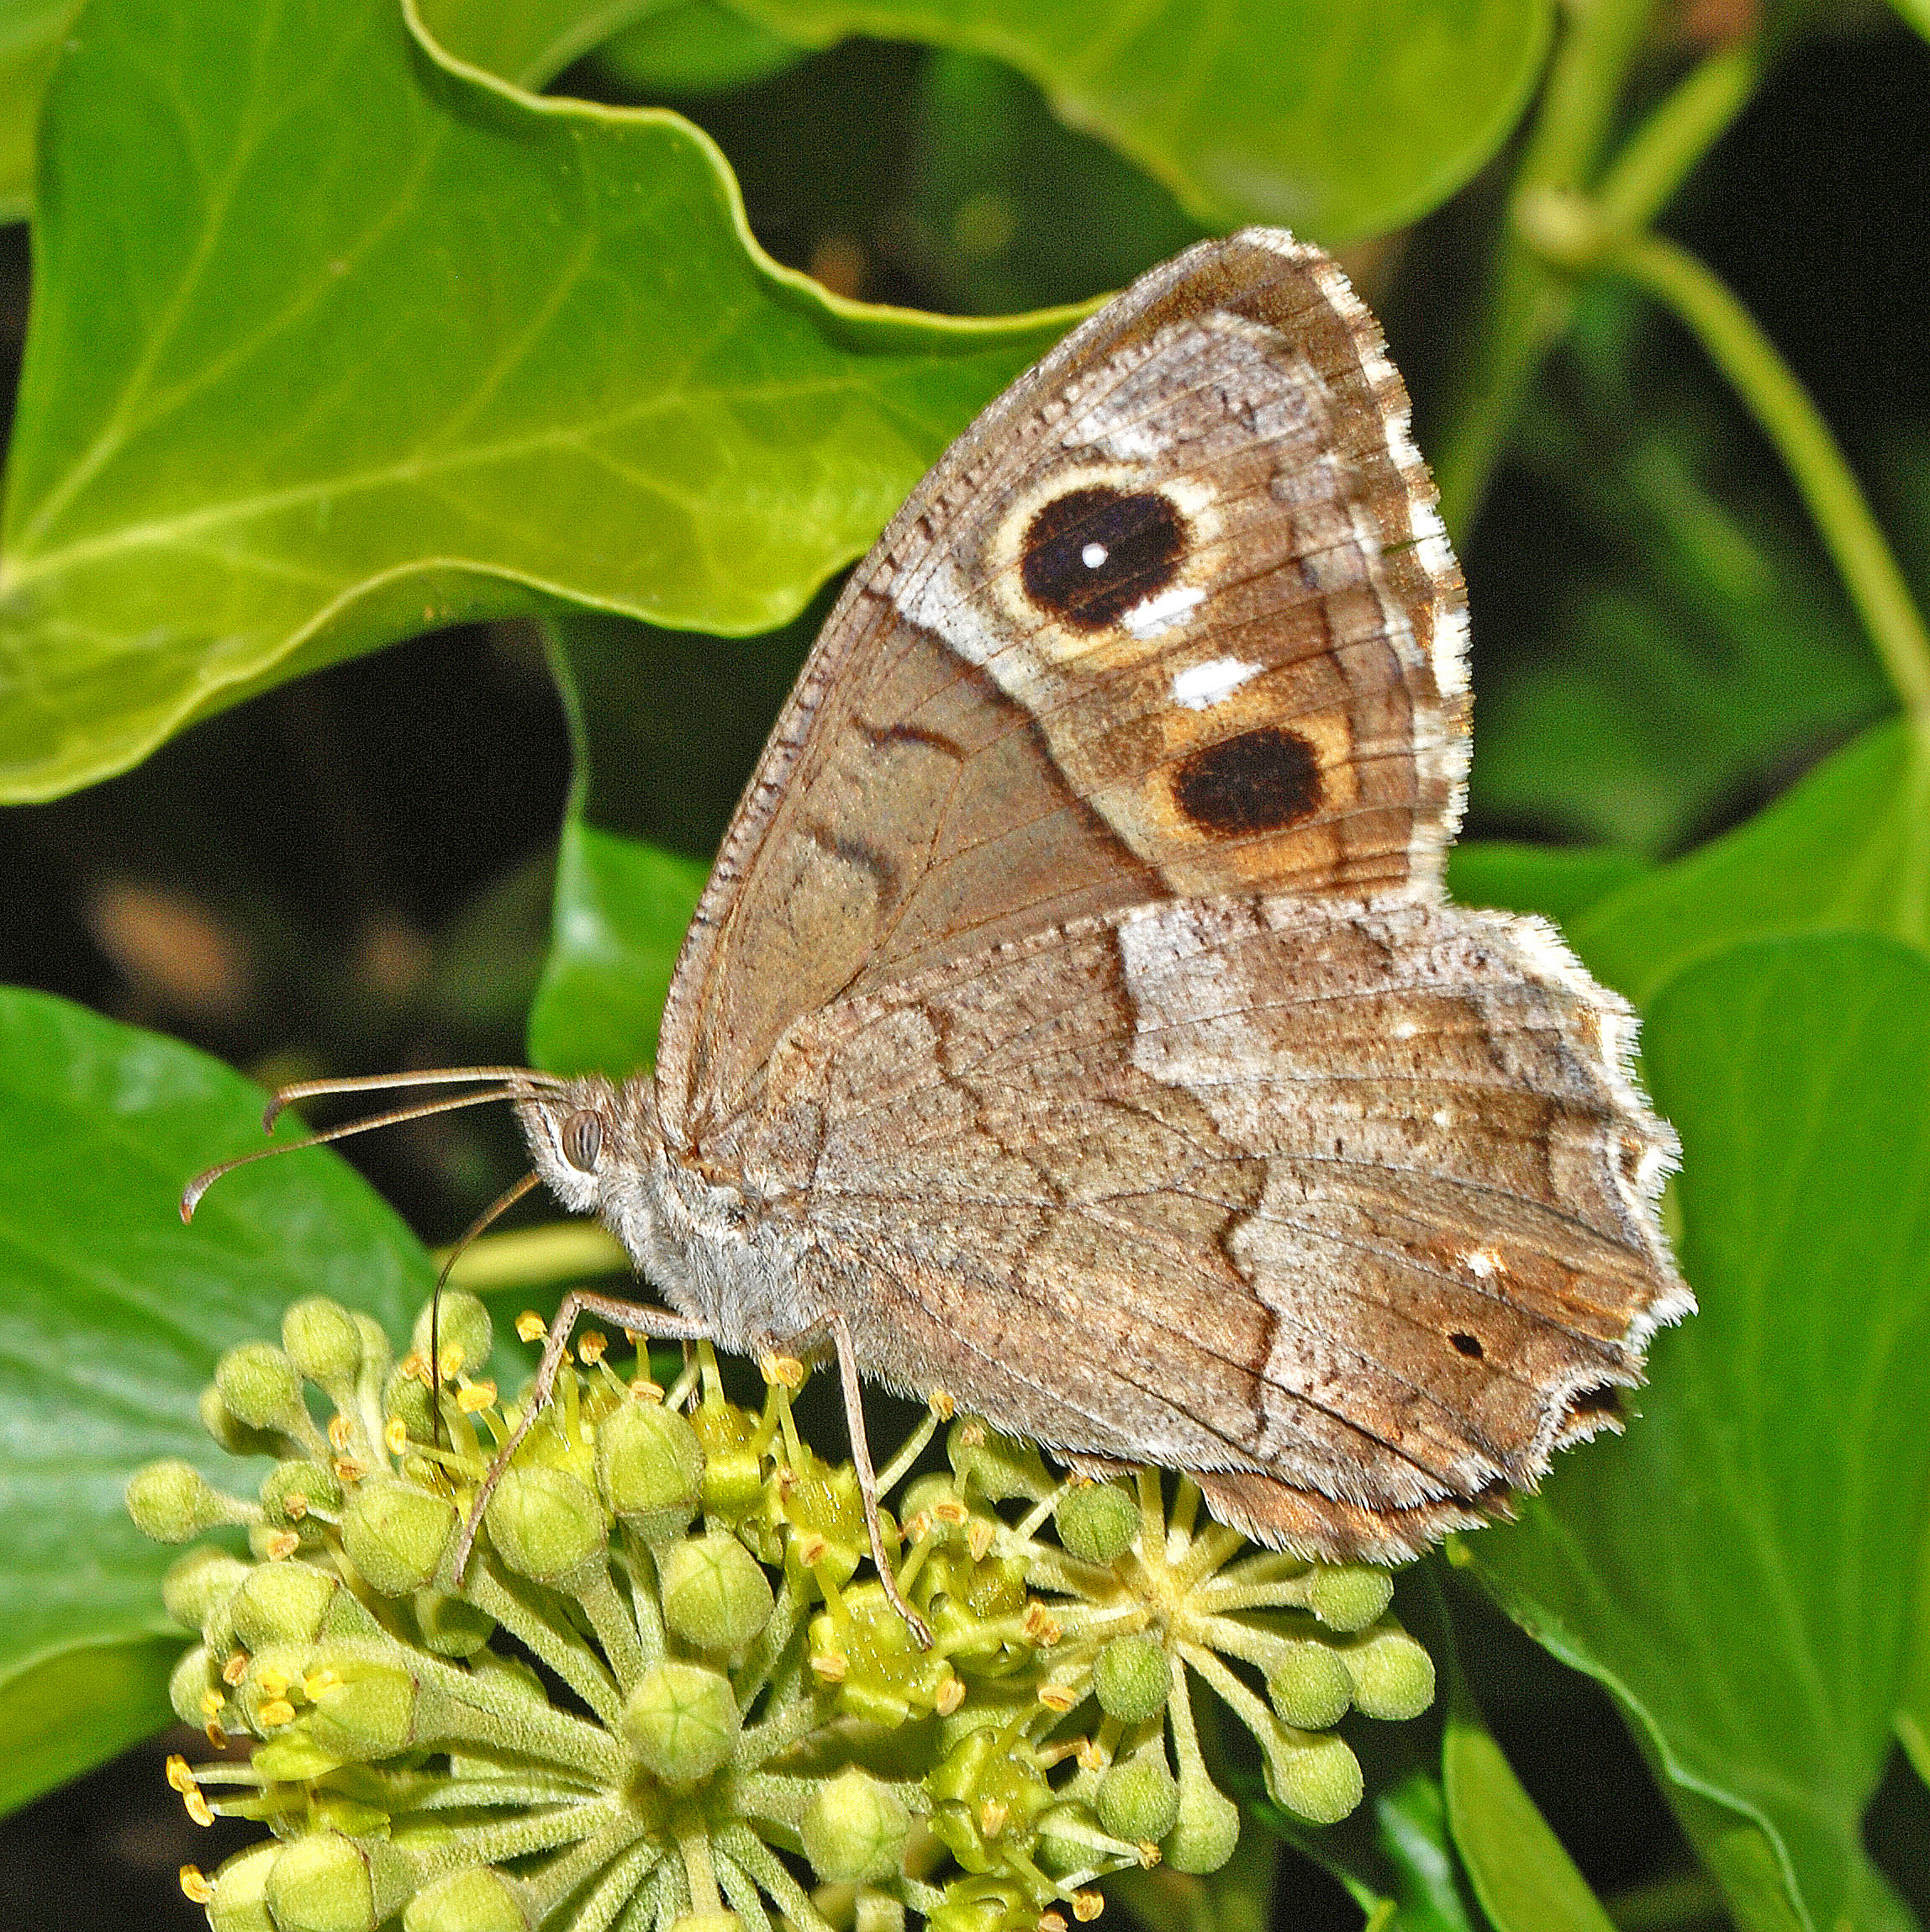 Tree grayling male butterfly, photo by Hectonichus